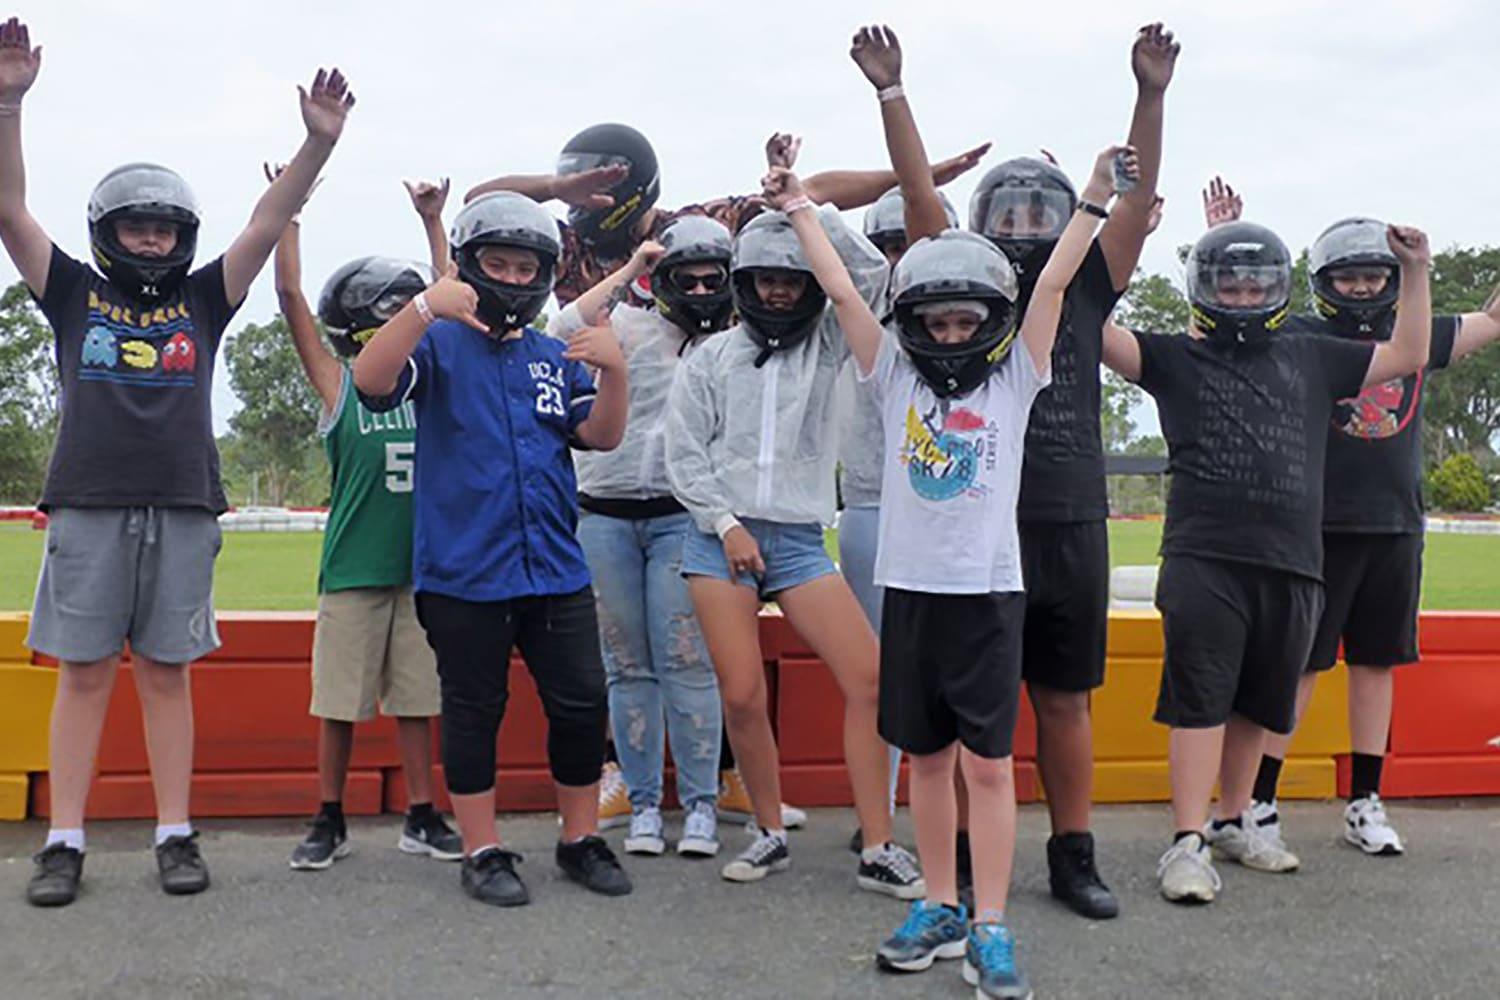 Kids Go Kart Racing Experience, 4 Sessions - Brisbane